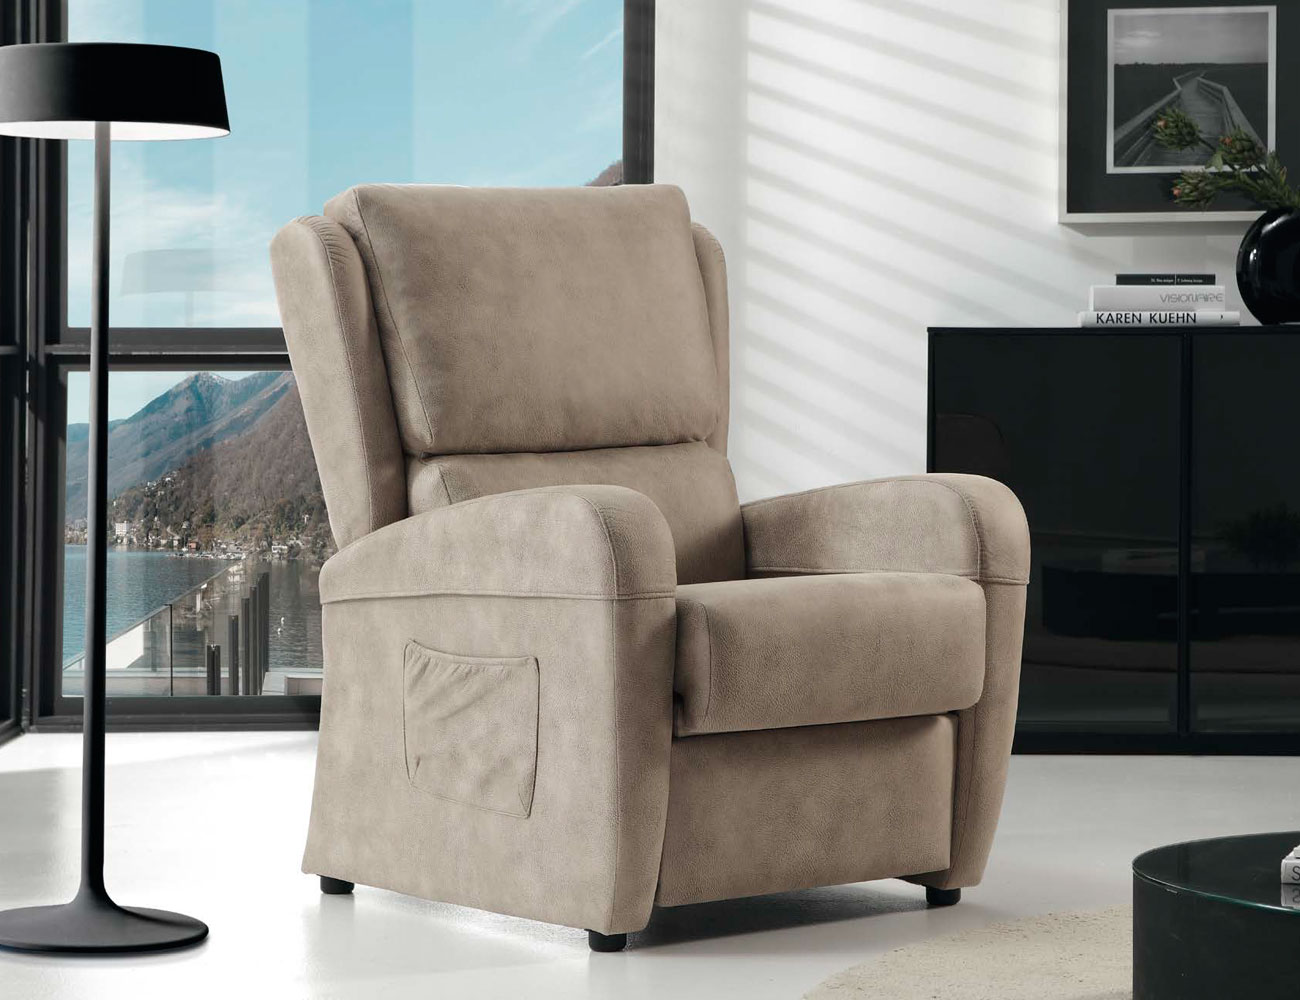 Sillon relax manual jana11